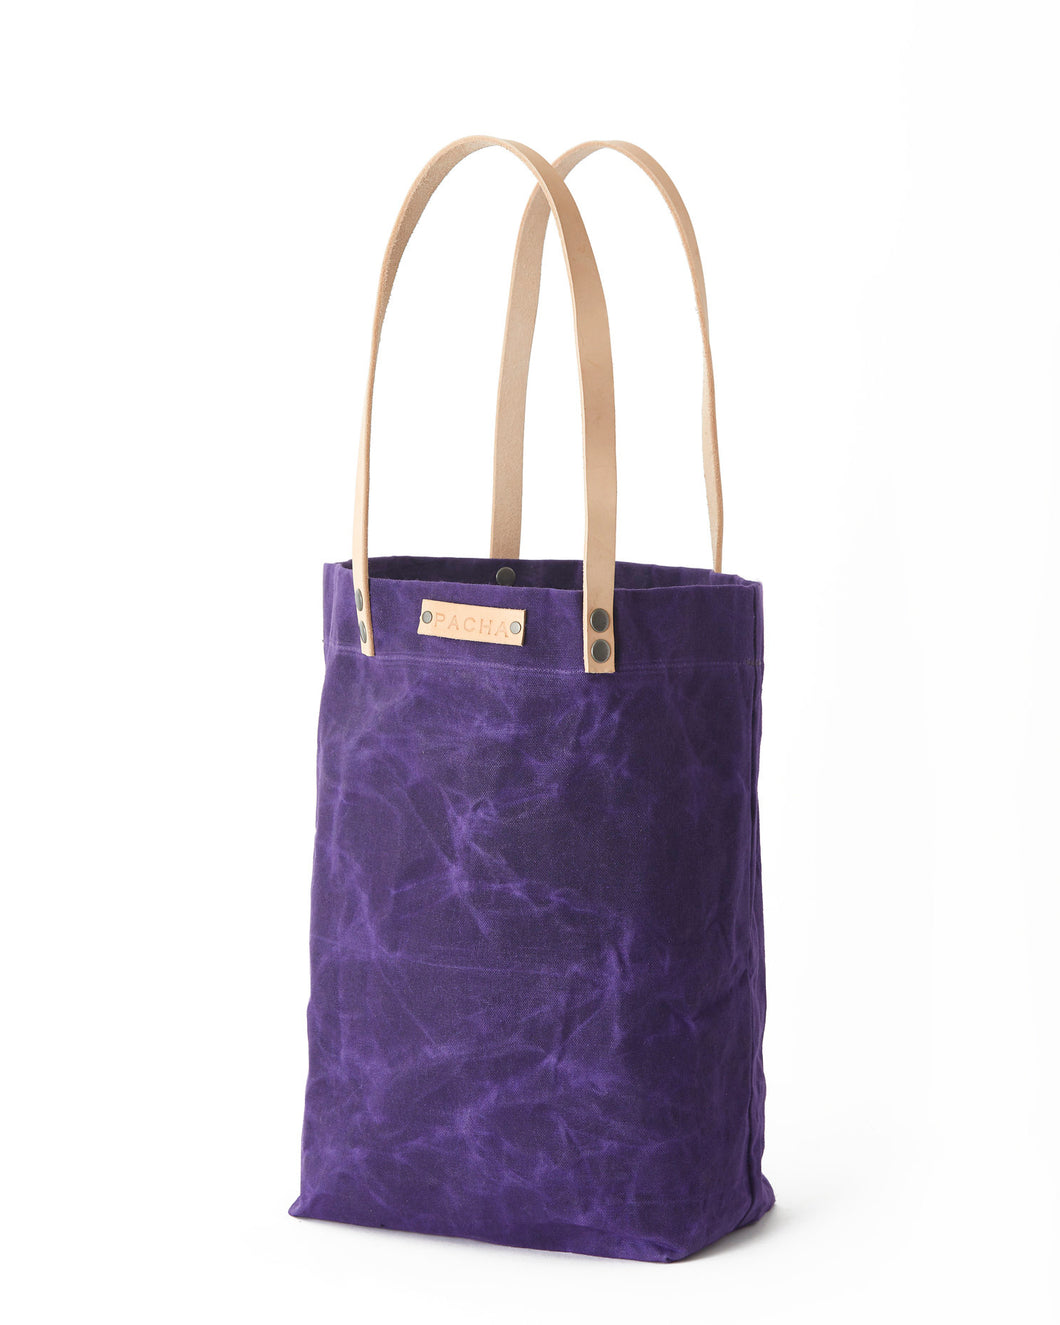 Atlas Tote - Native Violet